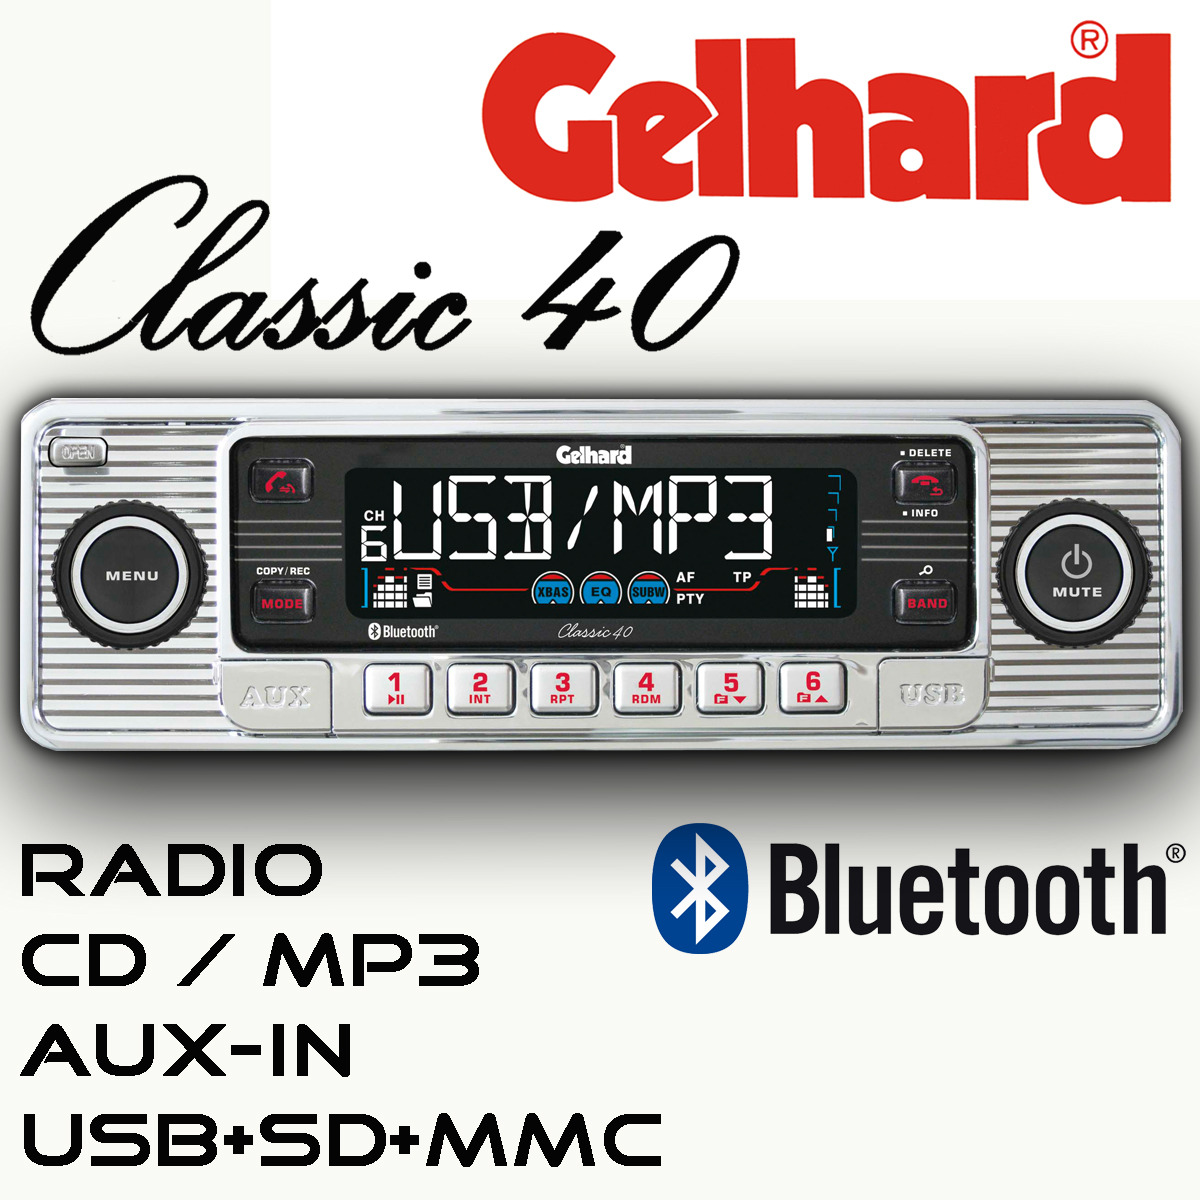 gelhard classic 40 silber rds autoradio cd mp3 usb sd. Black Bedroom Furniture Sets. Home Design Ideas